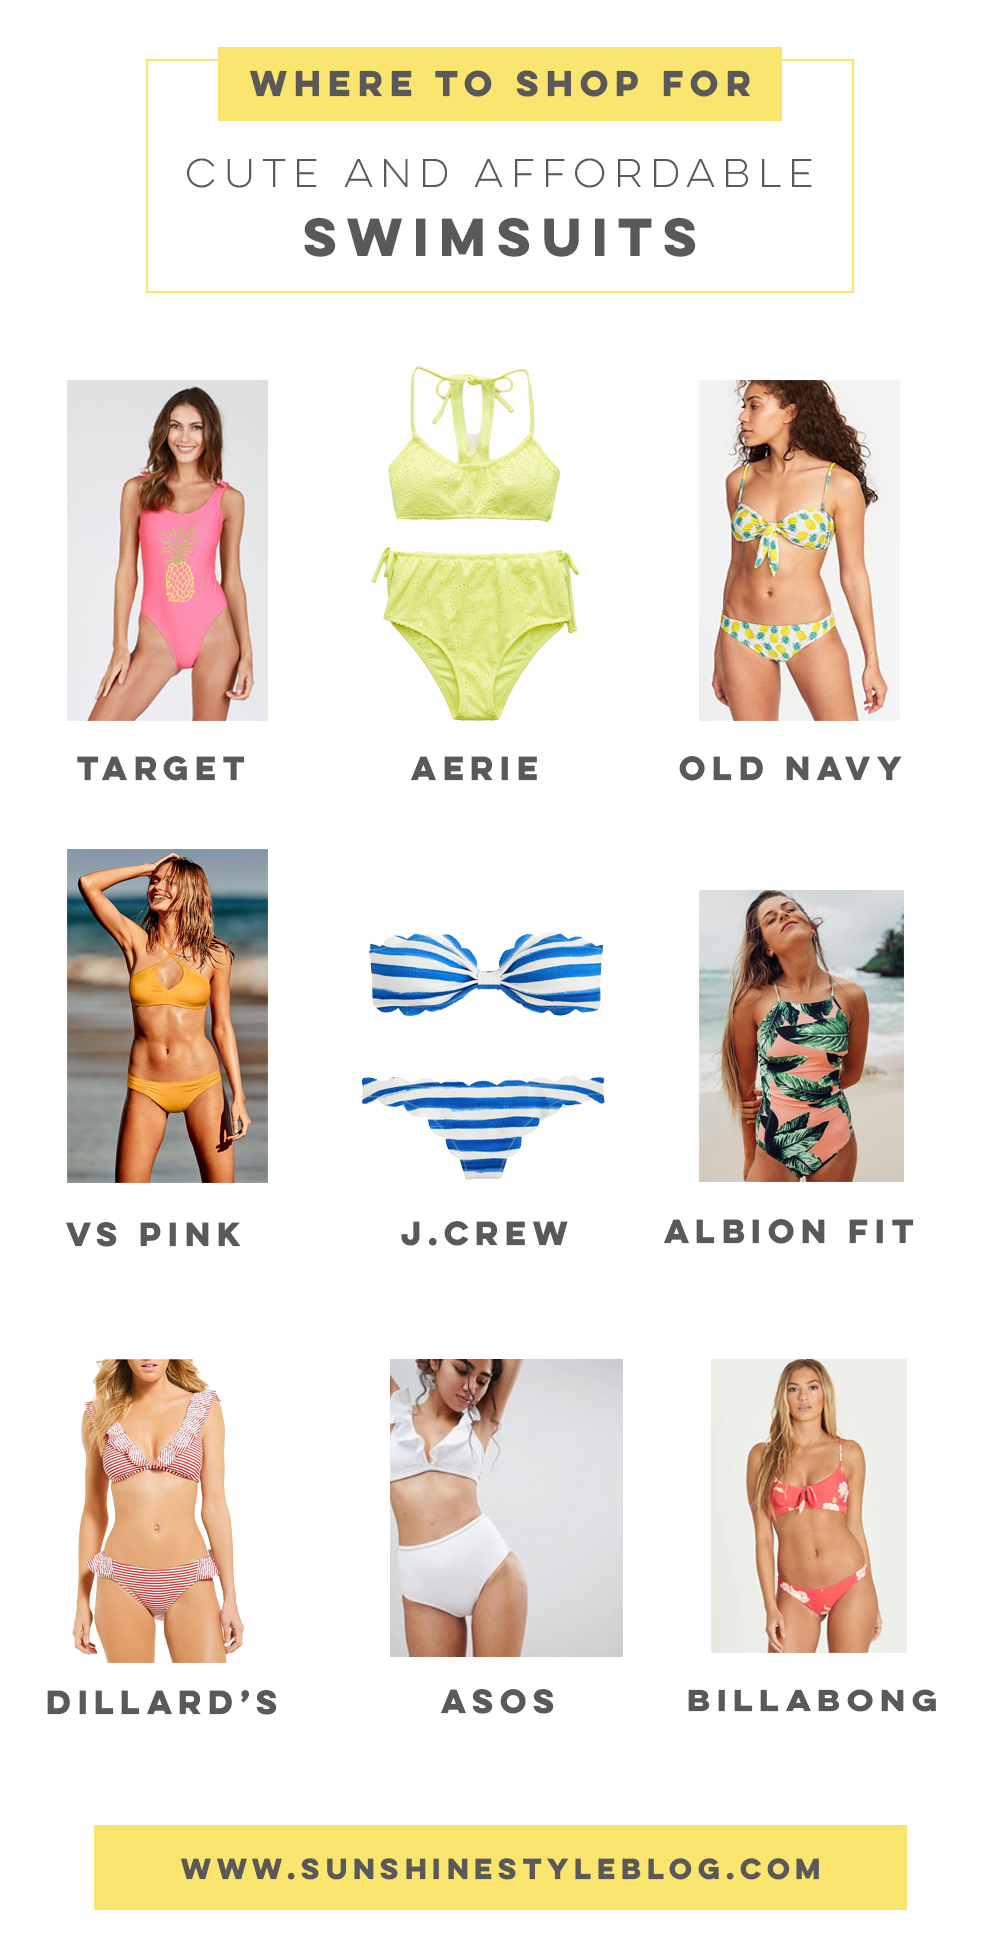 c5f21a03a6704 Swimsuit Shopping Guide  Where to Shop for Cute and Affordable Swimsuits